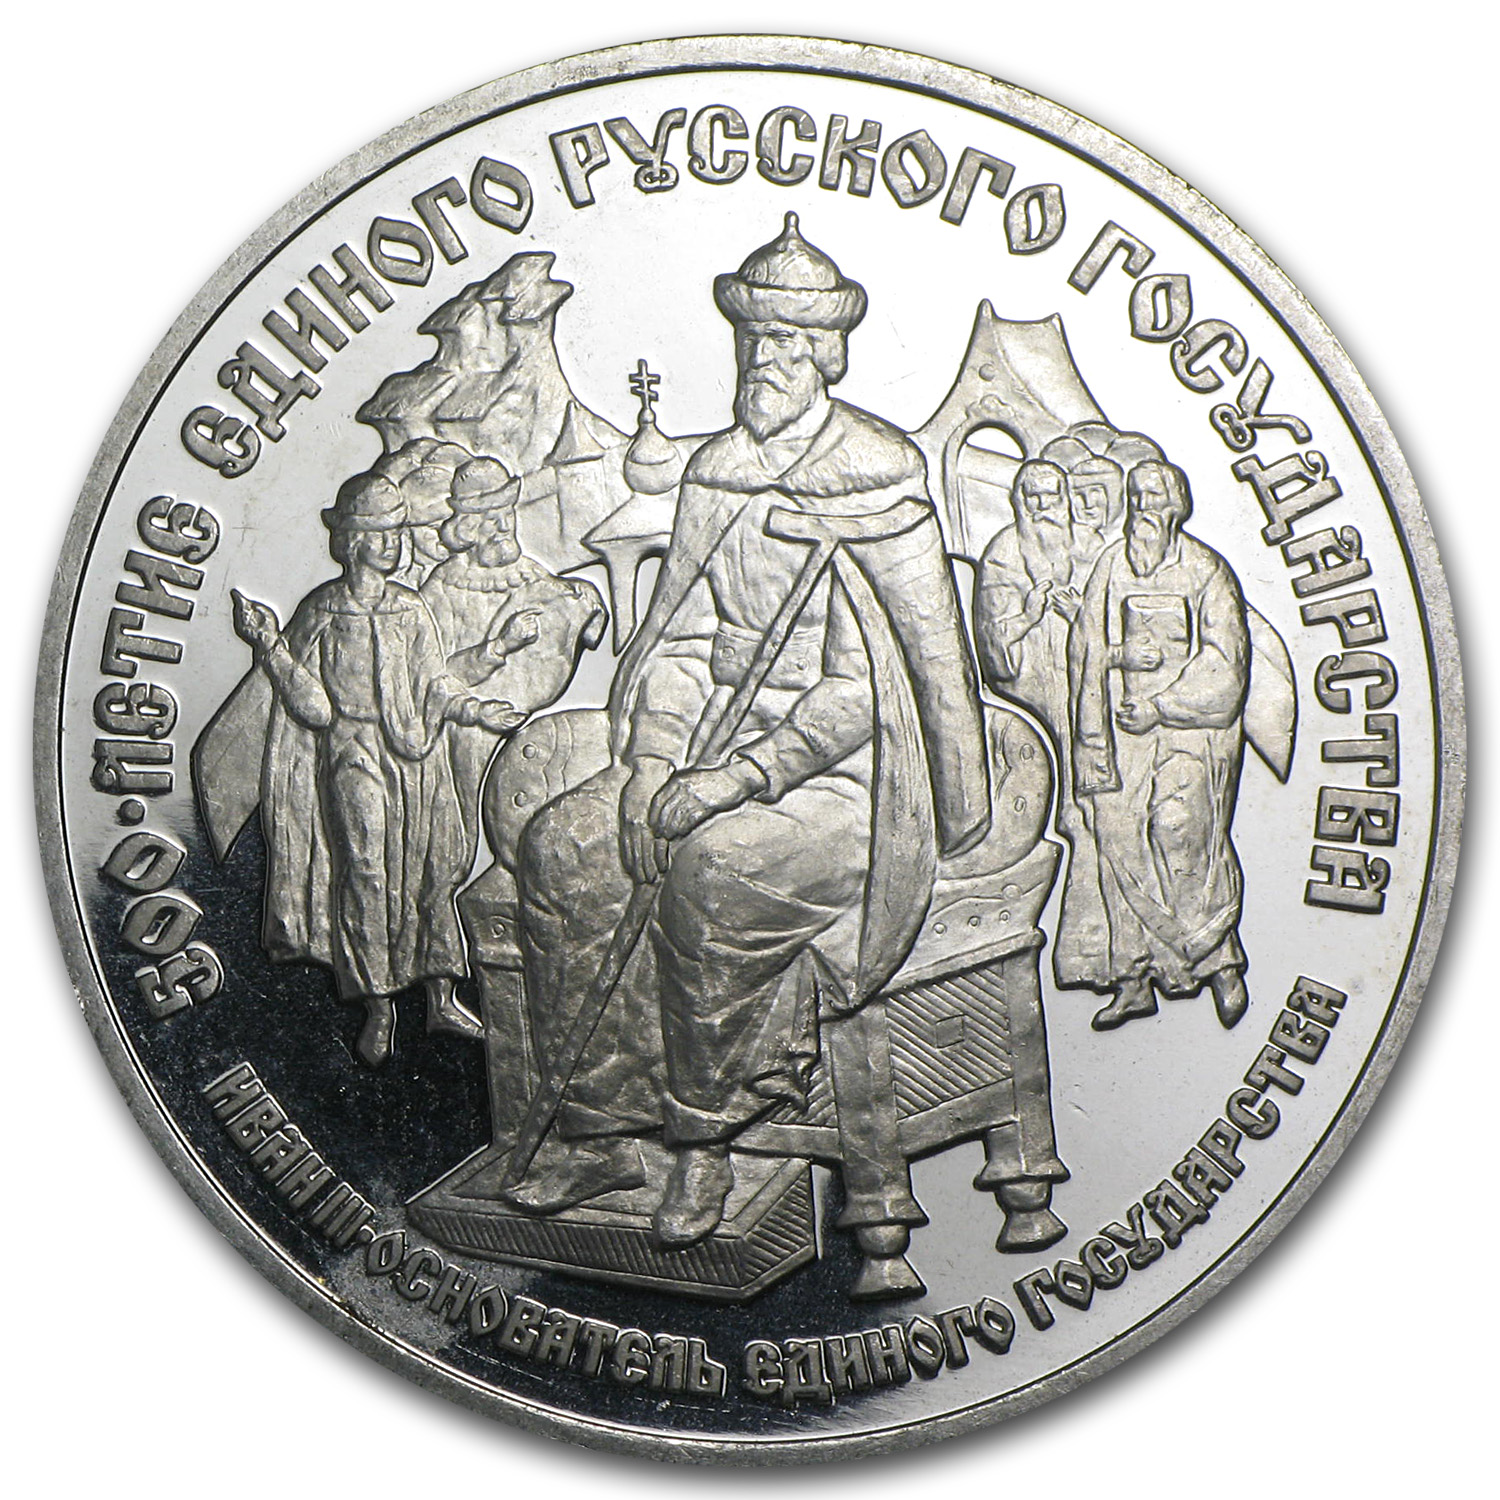 1989 1 oz Russian Palladium Proof (500th Anniversary)